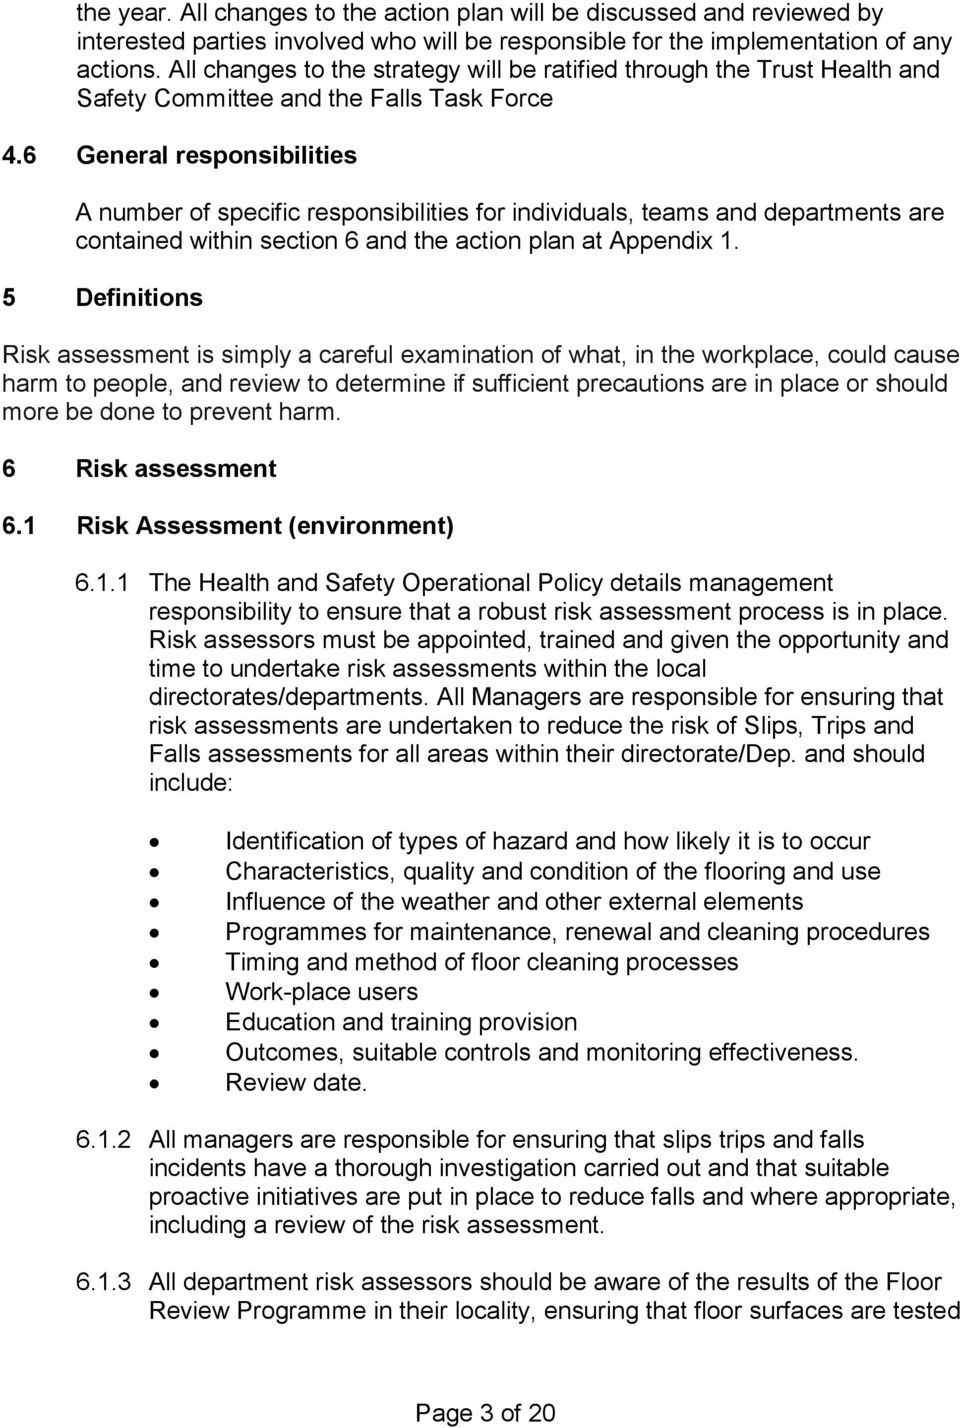 6 General responsibilities A number of specific responsibilities for individuals, teams and departments are contained within section 6 and the action plan at Appendix 1.